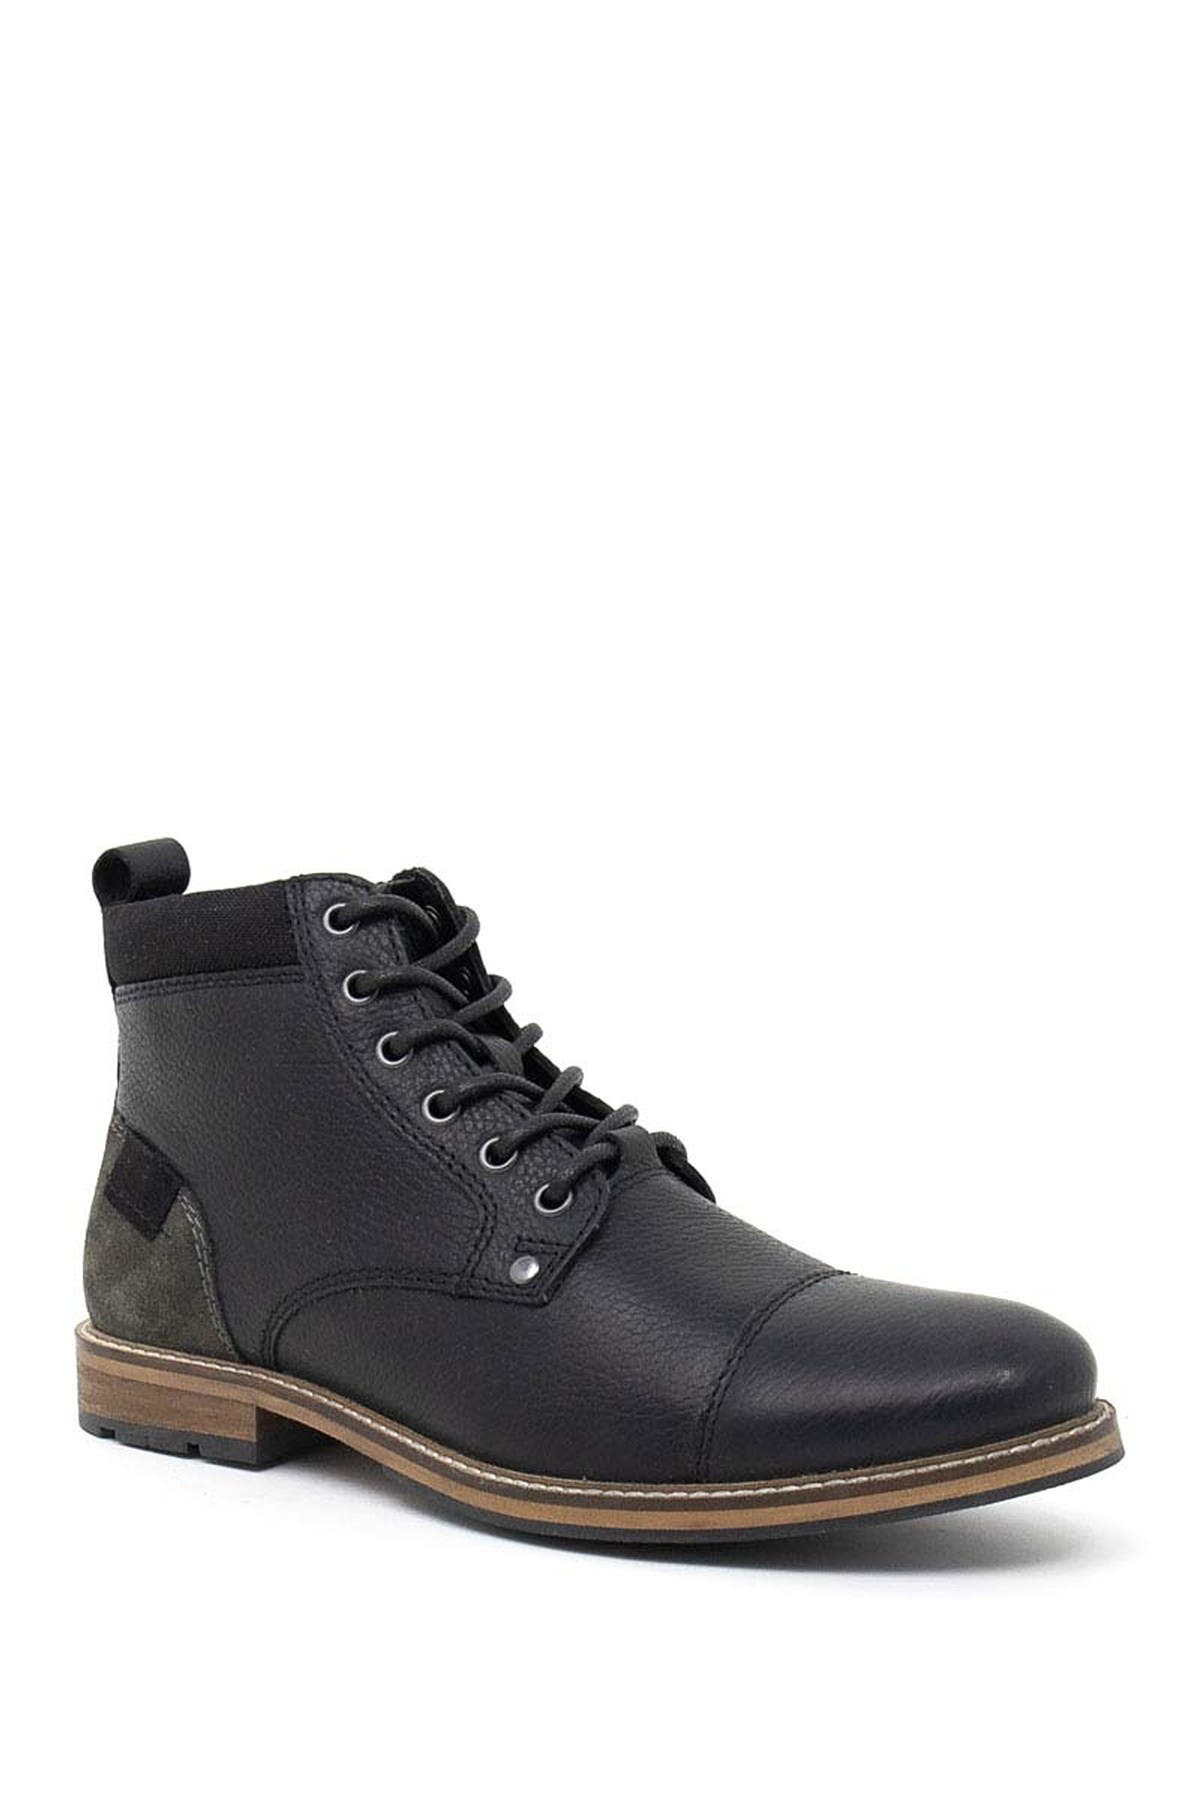 Image of Crevo Neal Leather Lace-Up Boot